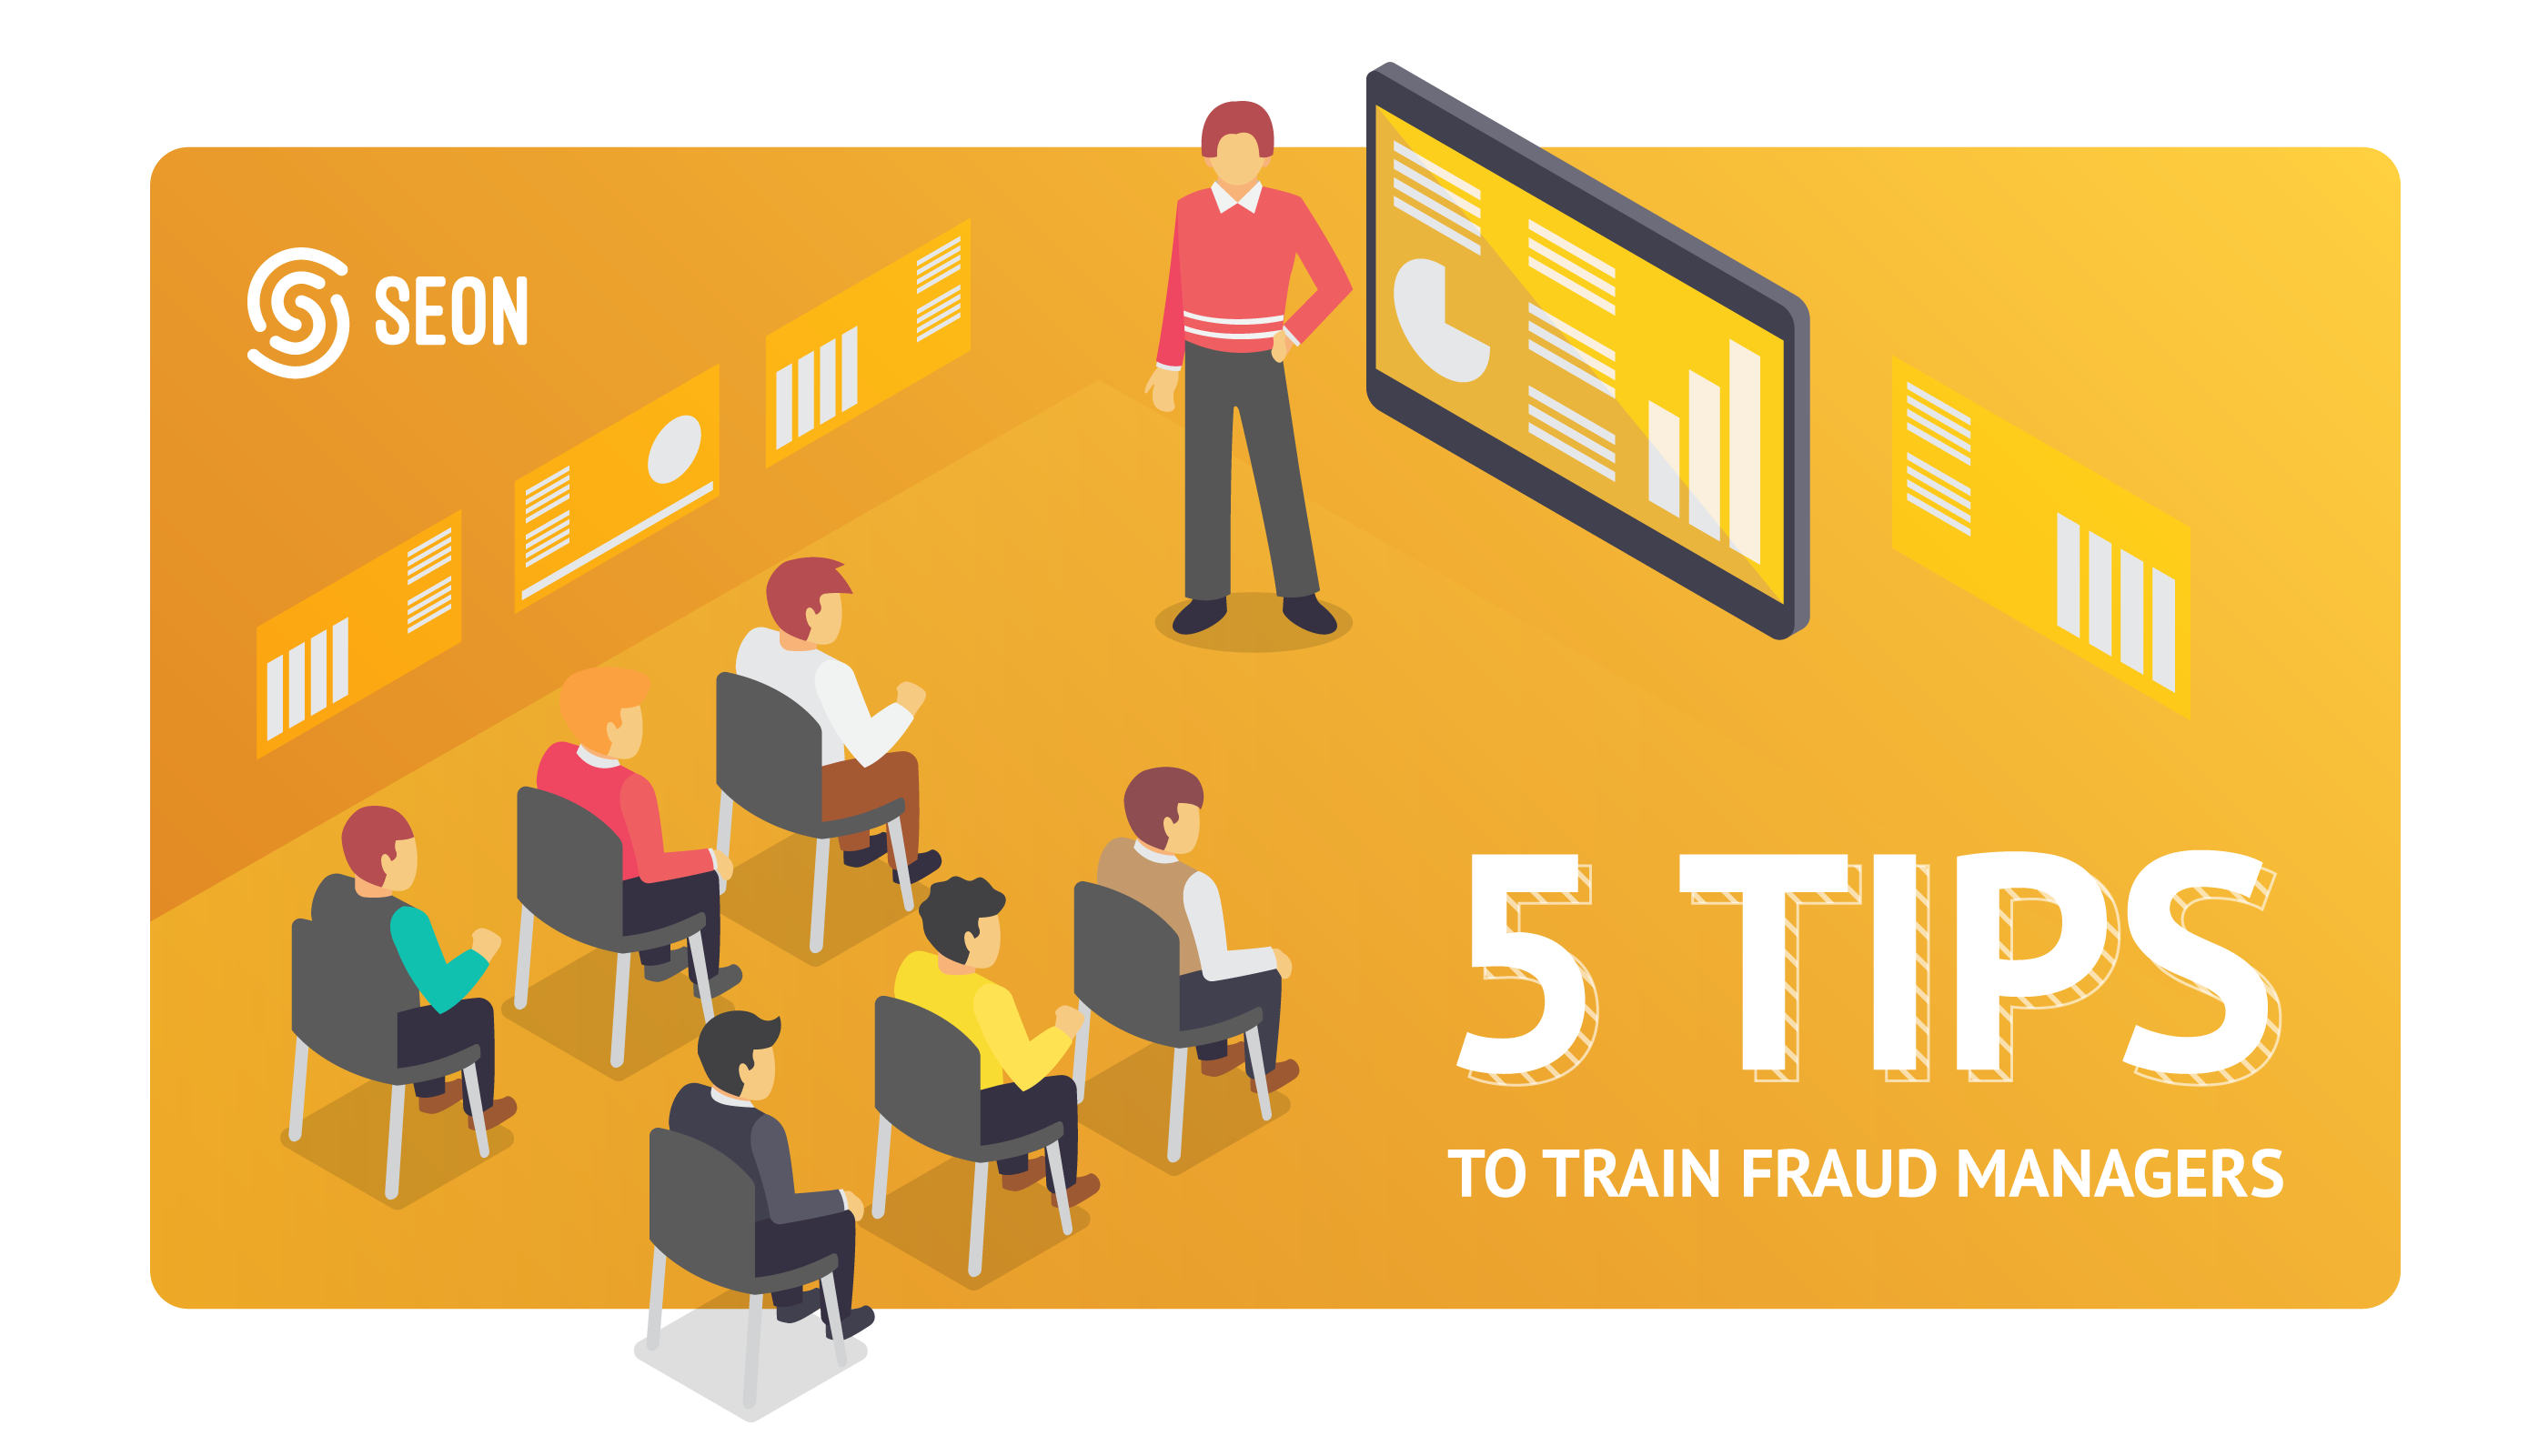 5 Tips on Properly Training Fraud Managers